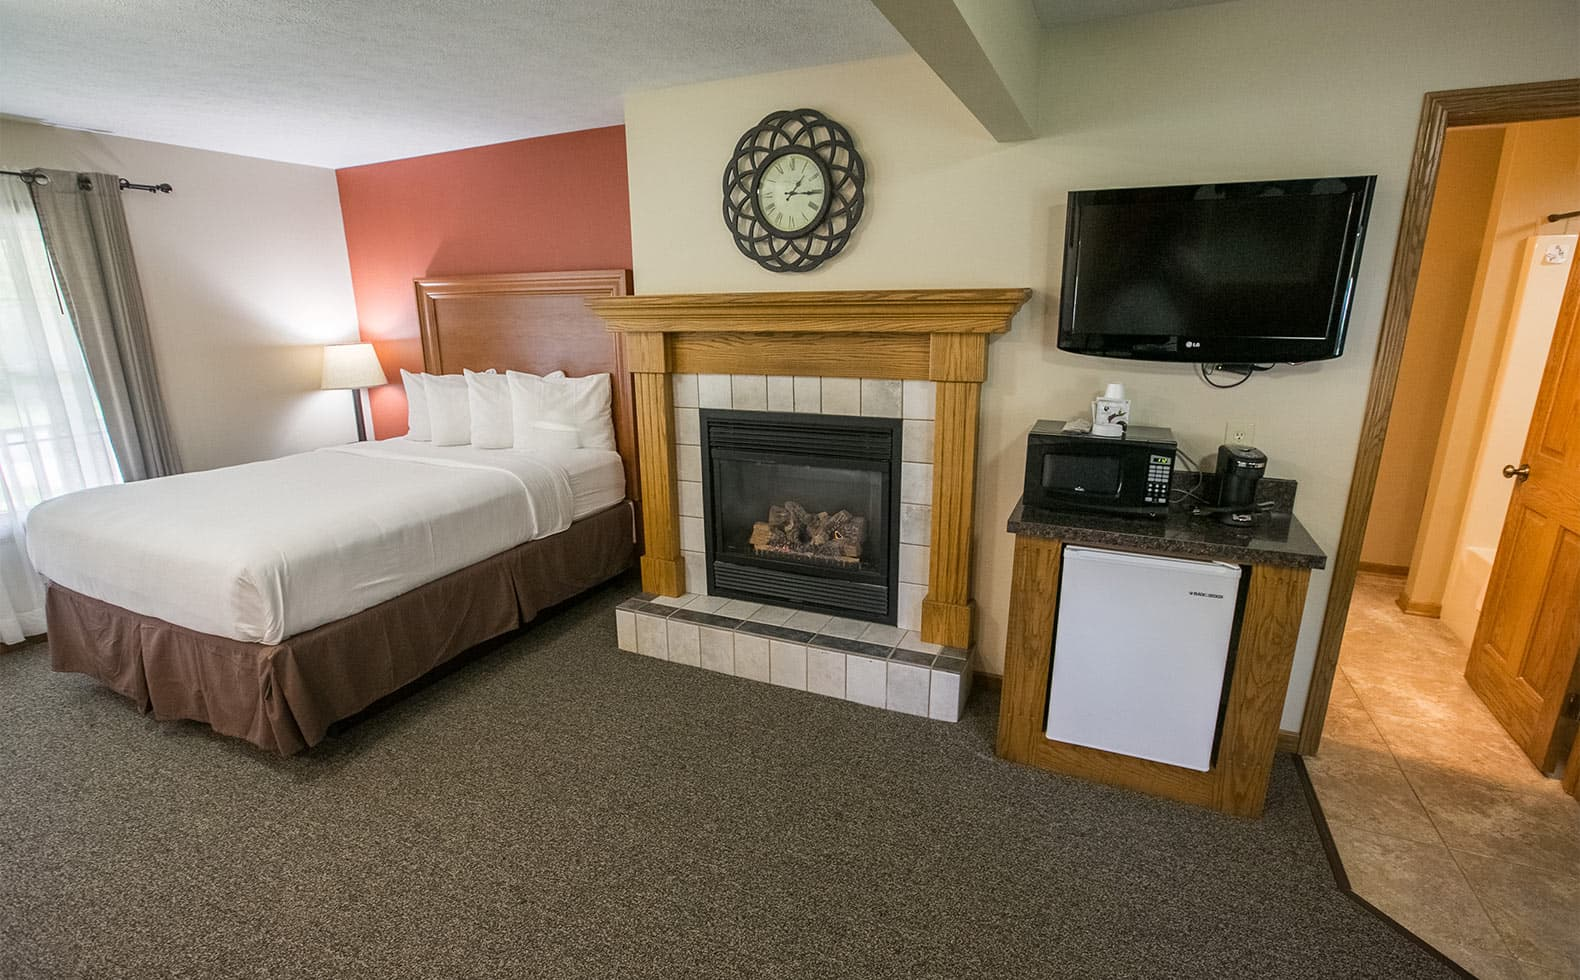 Queen Bed, Fireplace, Mini Fridge and microwave, TV